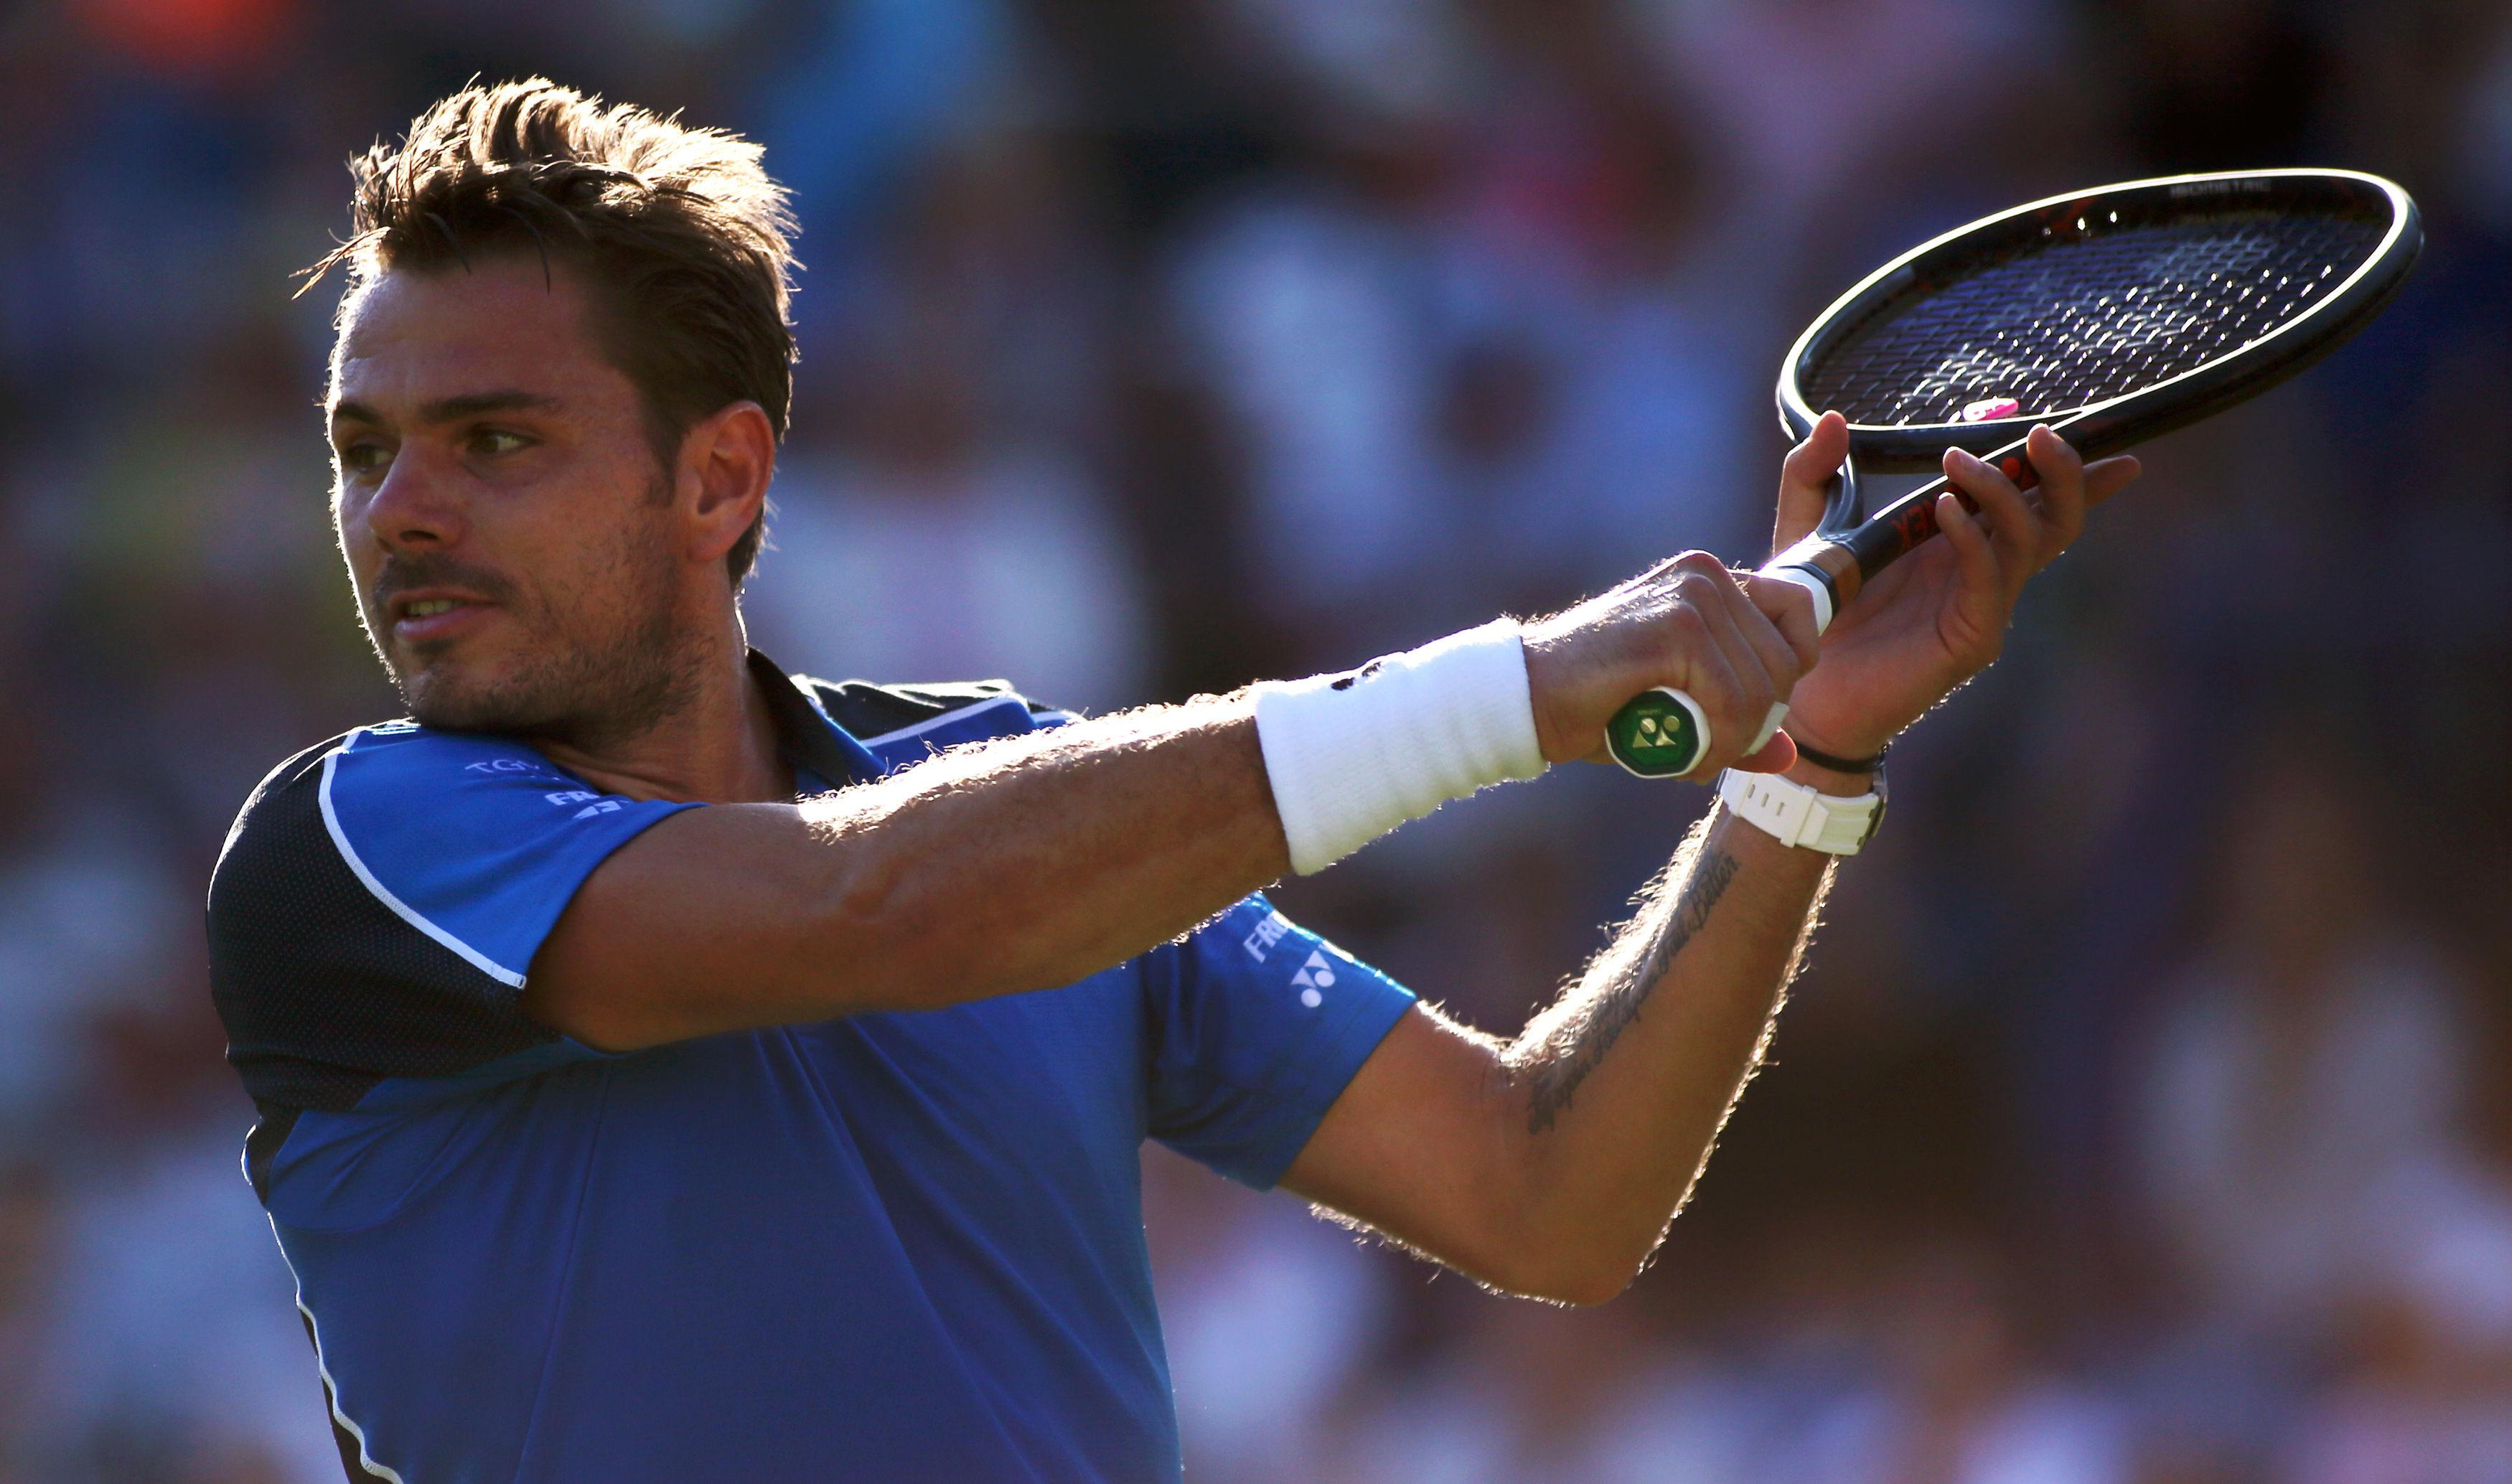 Stan Wawrinka was overpowered by Andy Murray in the Eastbourne International